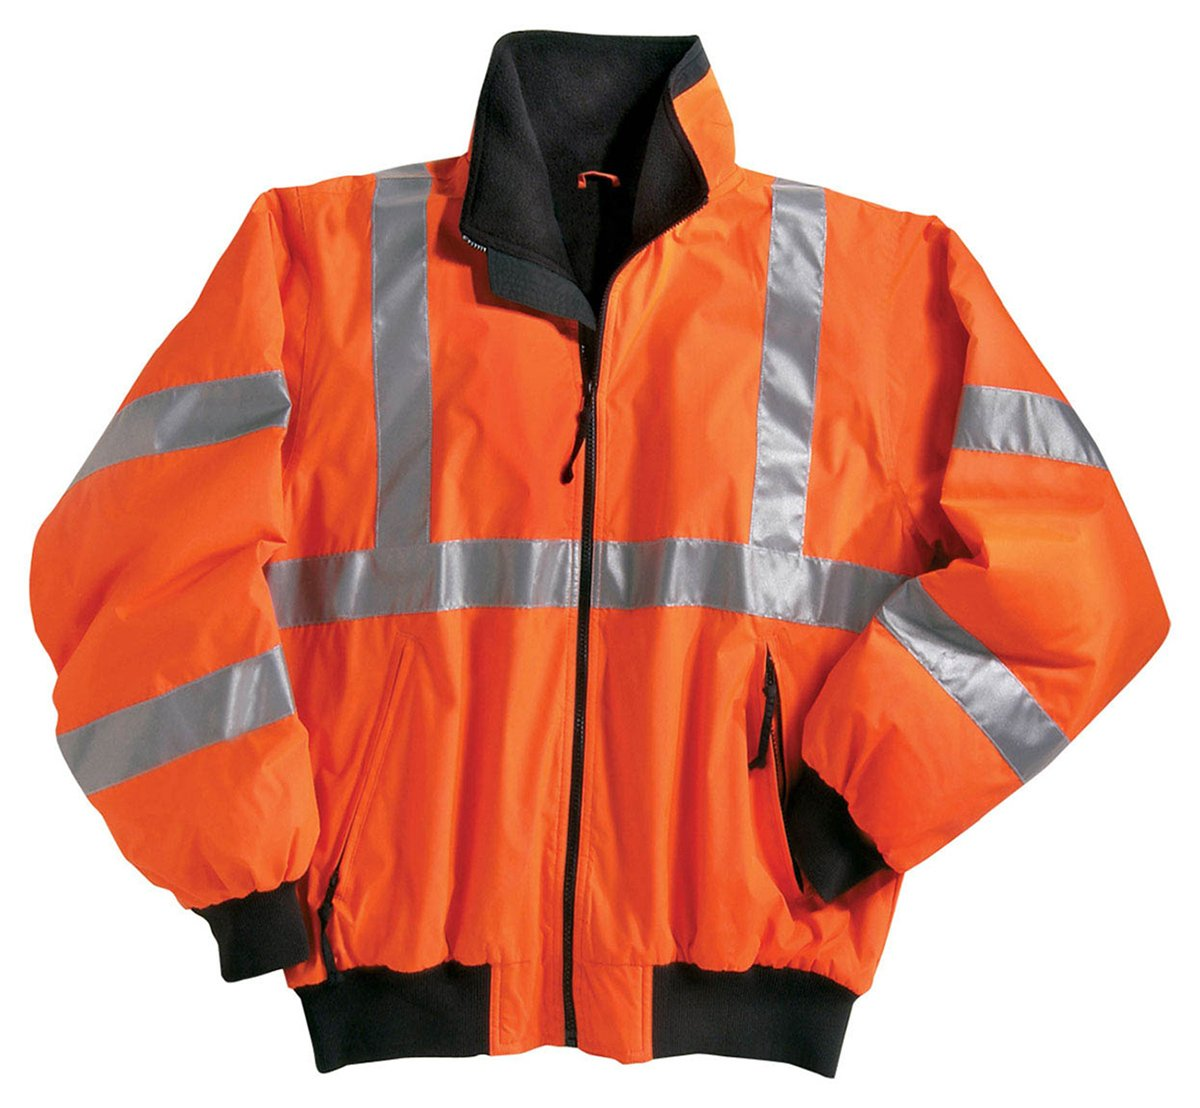 Tri-Mountain Men's 8830 District Safety Jacket